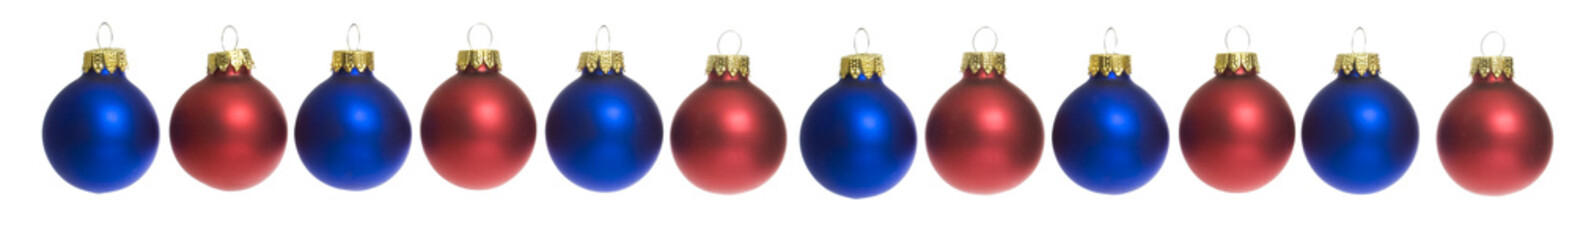 Row of Red and Blue Christmas Balls